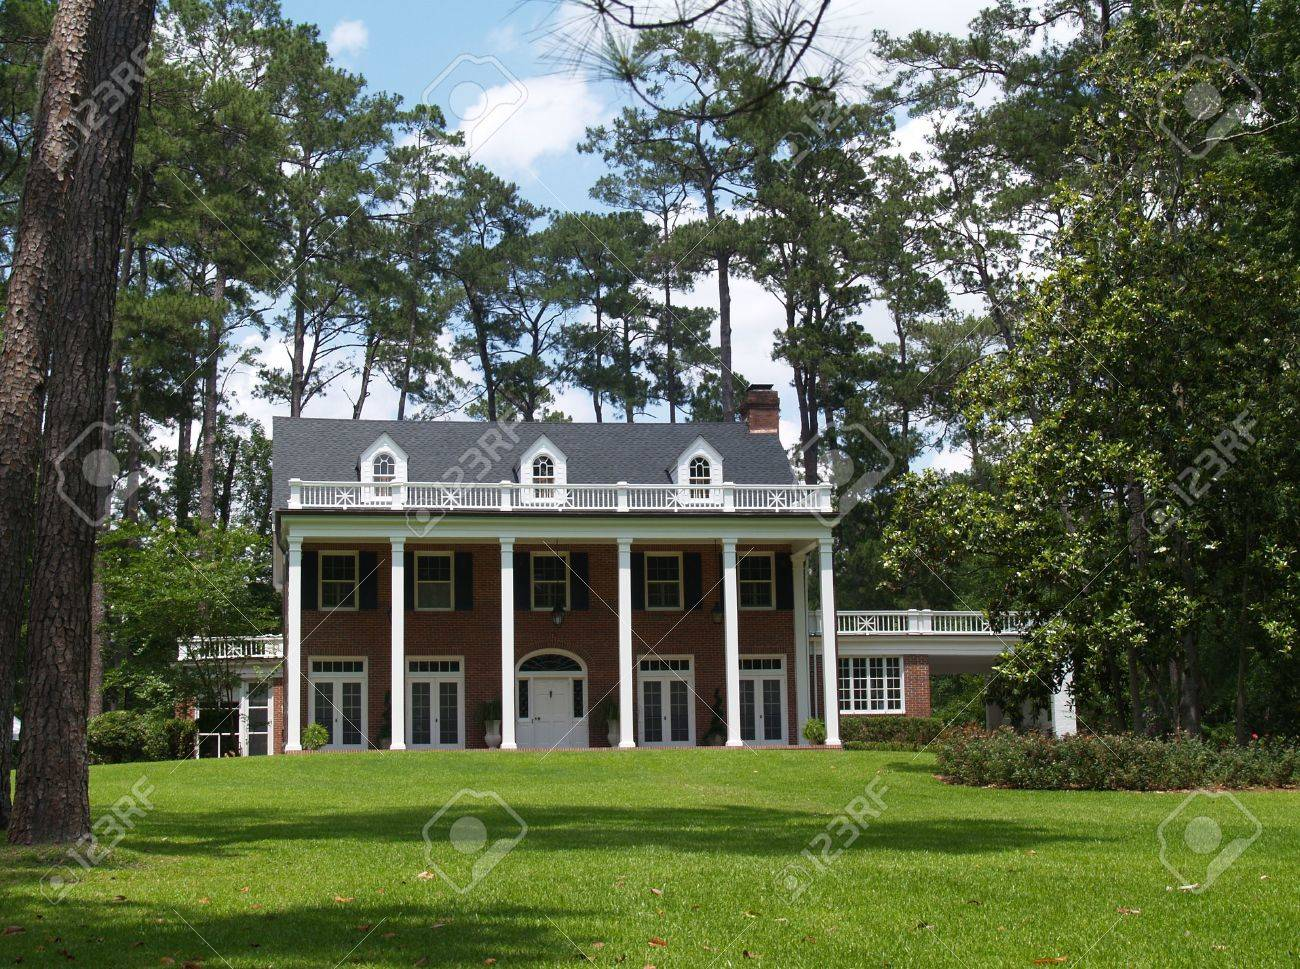 Two story residential, historical, south GA home with brick facade and white columns.Two story residential, historical, south GA home with brick facade and white columns.Two story residential, historical, south GA home with brick facade and white colum - 5608251